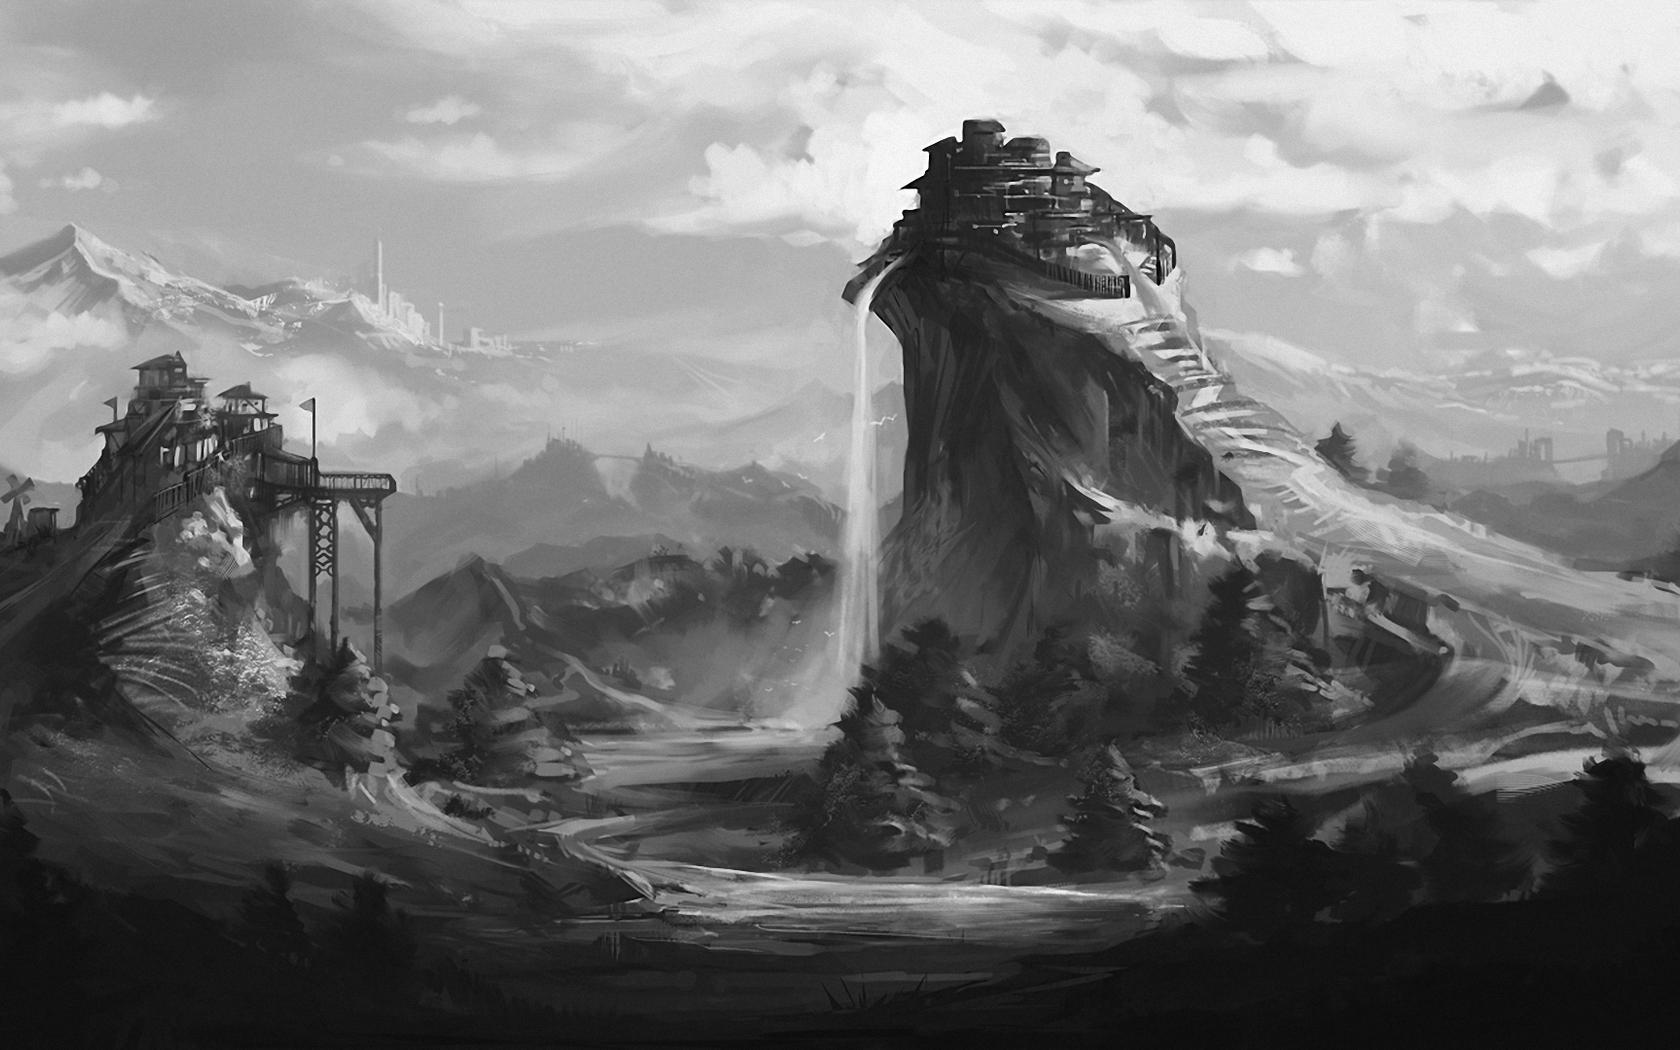 gray_art_fantasy_landscape_hills_fort_mountains_hd-wallpaper-424195.jpg